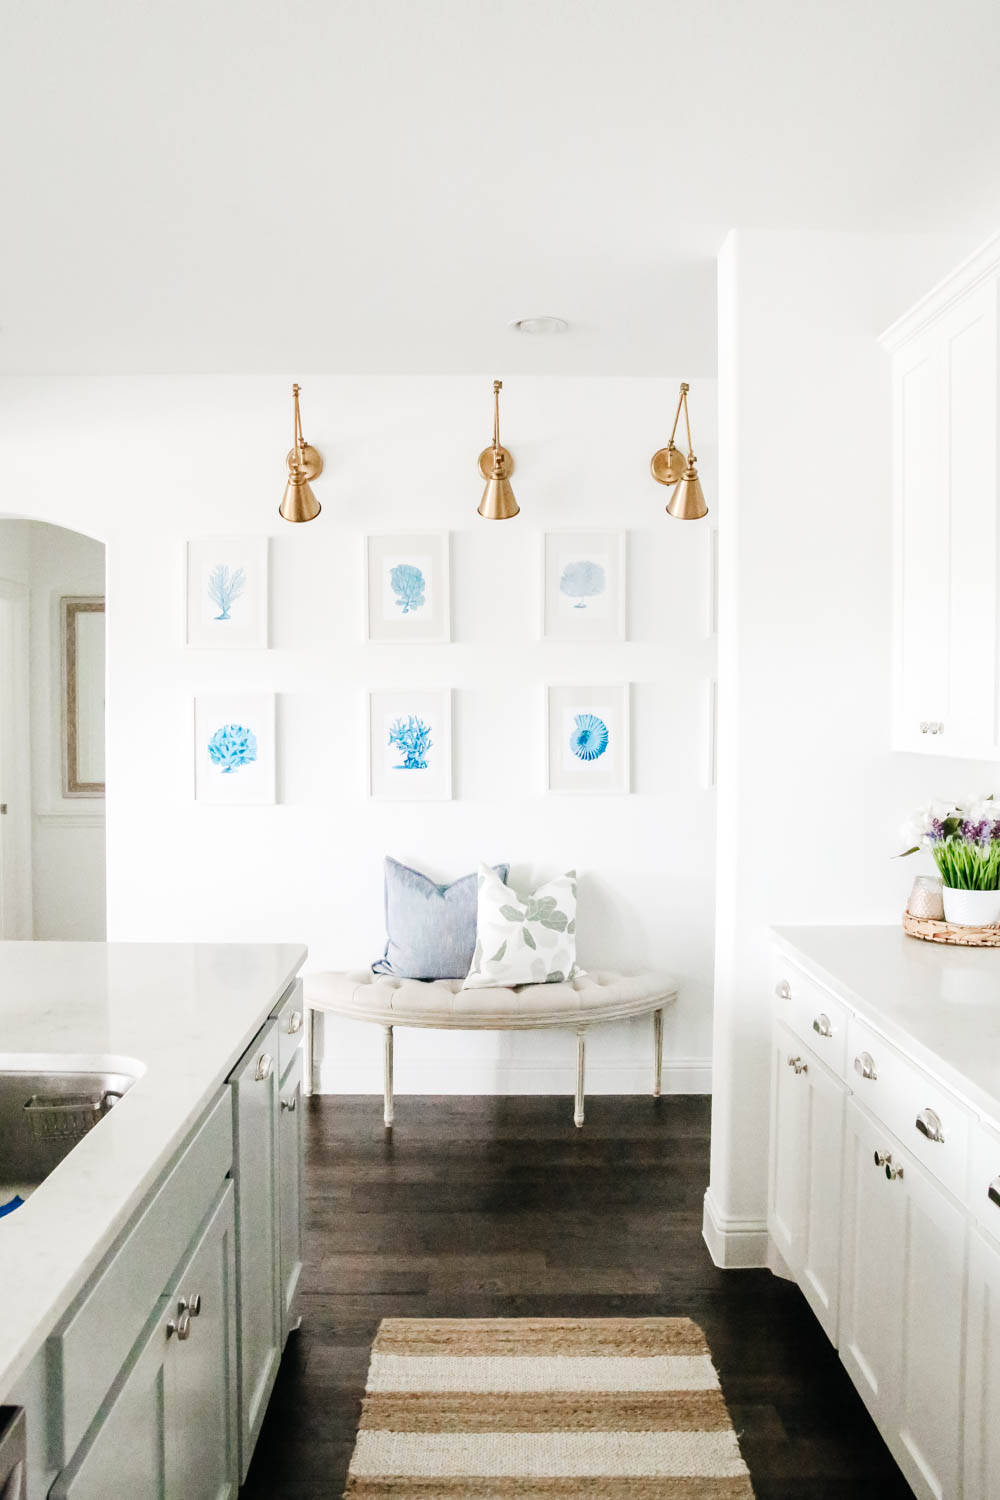 Gallery wall details in a white kitchen. Blue and white coastal art prints. #gallerywall #designtips #kitcheninspo #ABlissfulNest